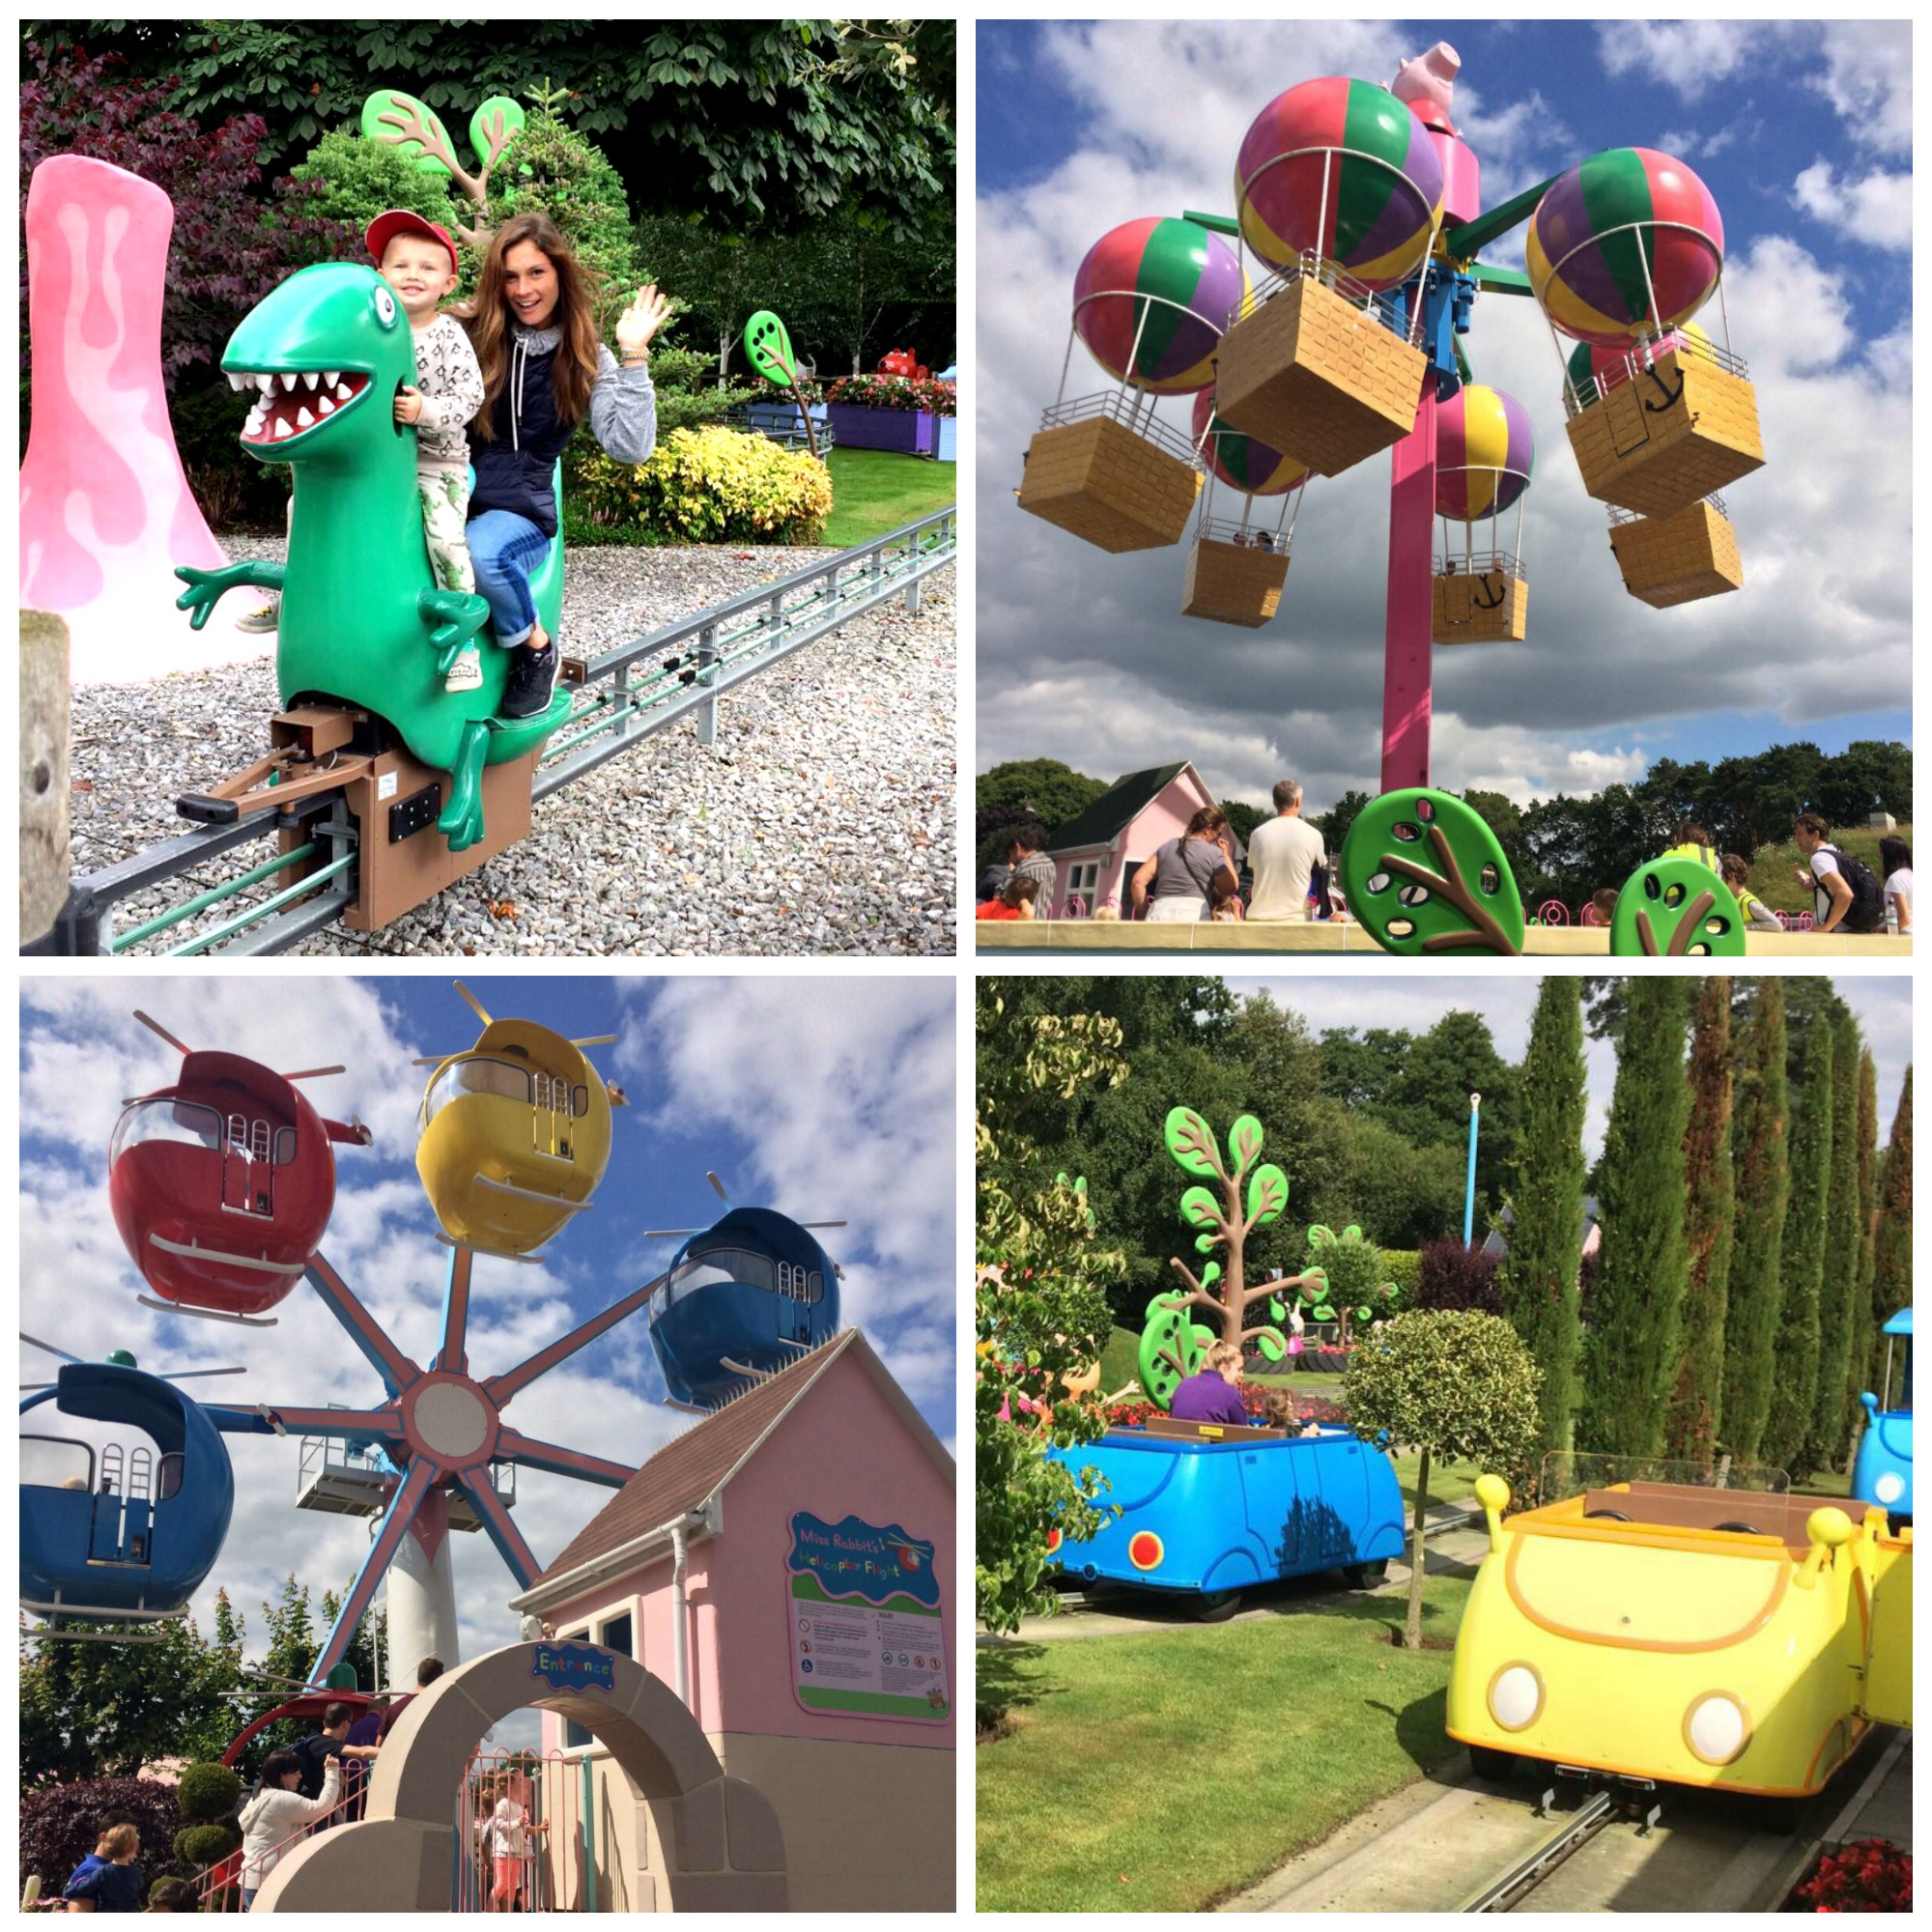 paultons park peppa pig world rides